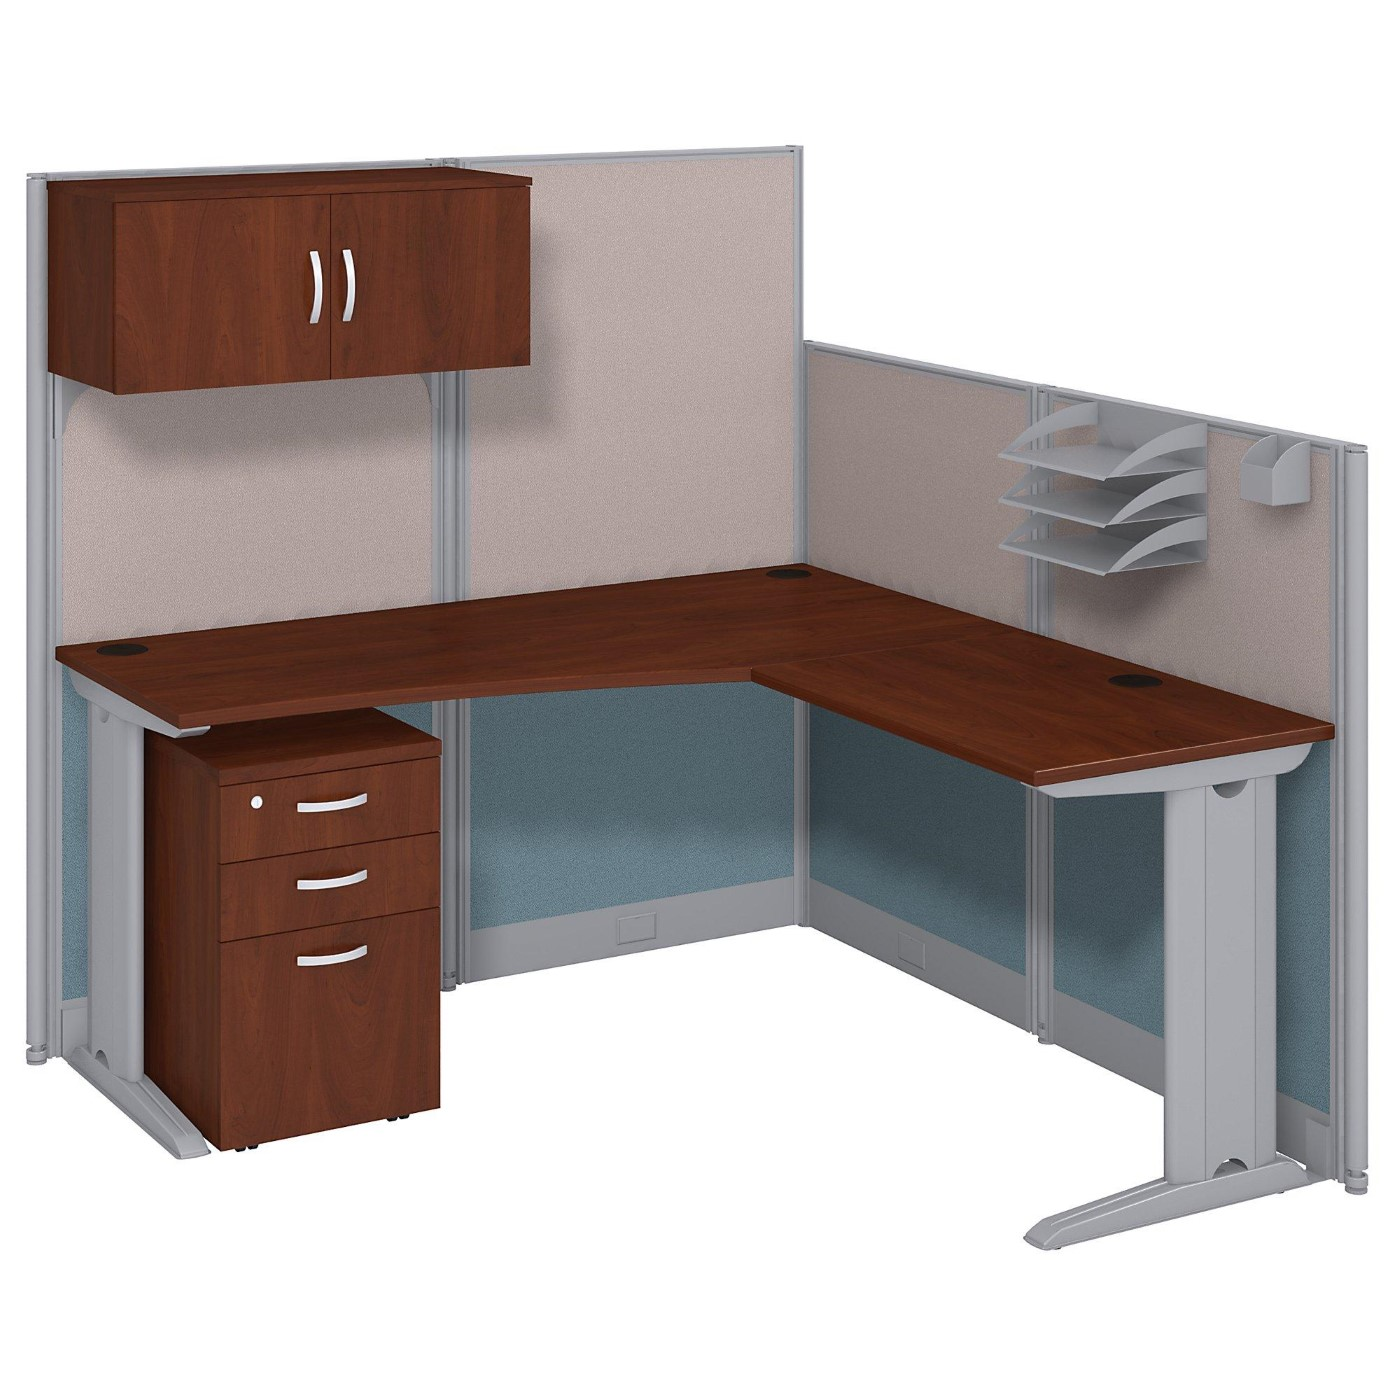 BUSH BUSINESS FURNITURE OFFICE IN AN HOUR 65W X 65D L SHAPED CUBICLE WORKSTATION WITH STORAGE. FREE SHIPPING.  SALE DEDUCT 10% MORE ENTER '10percent' IN COUPON CODE BOX WHILE CHECKING OUT. ENDS 5-31-20.